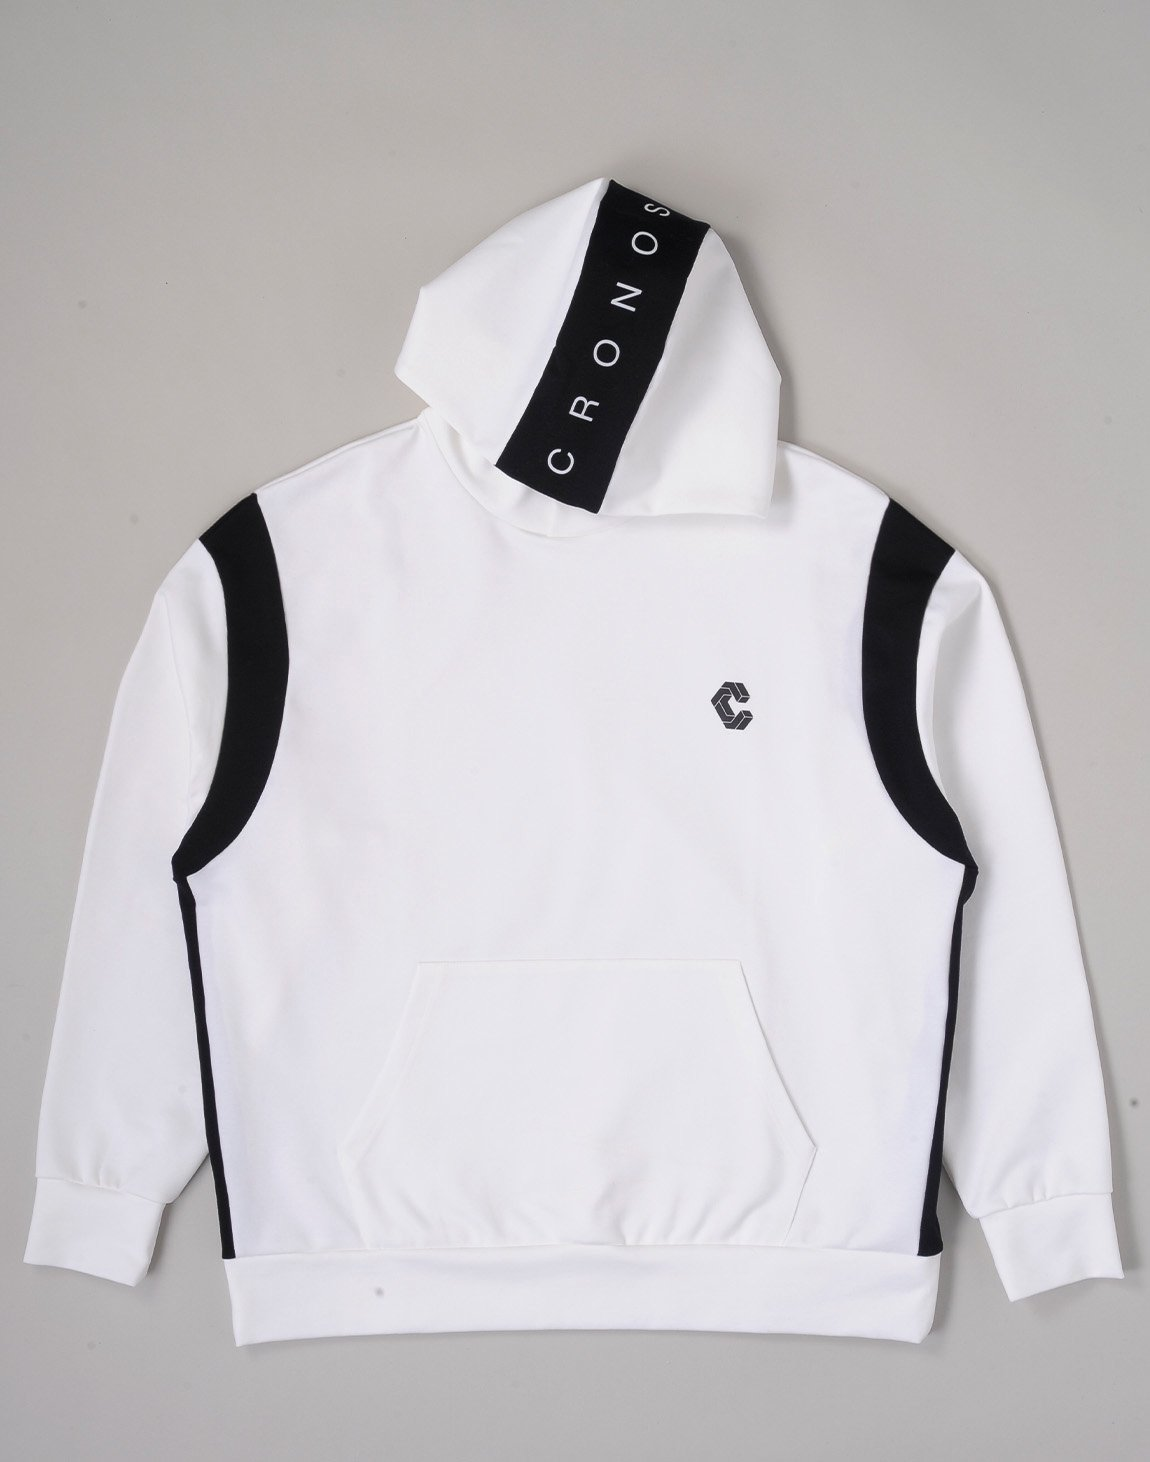 <img class='new_mark_img1' src='https://img.shop-pro.jp/img/new/icons1.gif' style='border:none;display:inline;margin:0px;padding:0px;width:auto;' />CRONOS HEAD LOGO HOODIE【WHITE×BLACK】